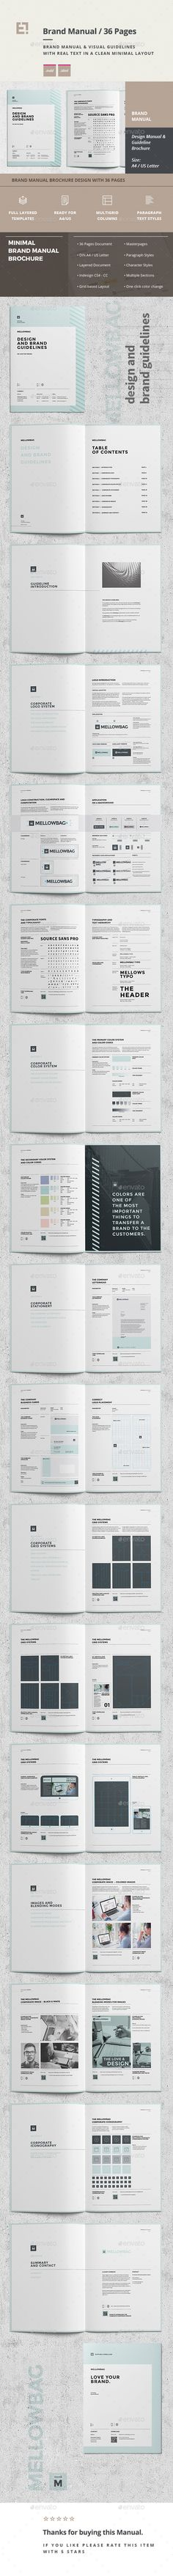 Brand #Manual - #Corporate #Brochures Download here: https://graphicriver.net/item/brand-manual/19735610?ref=alena994